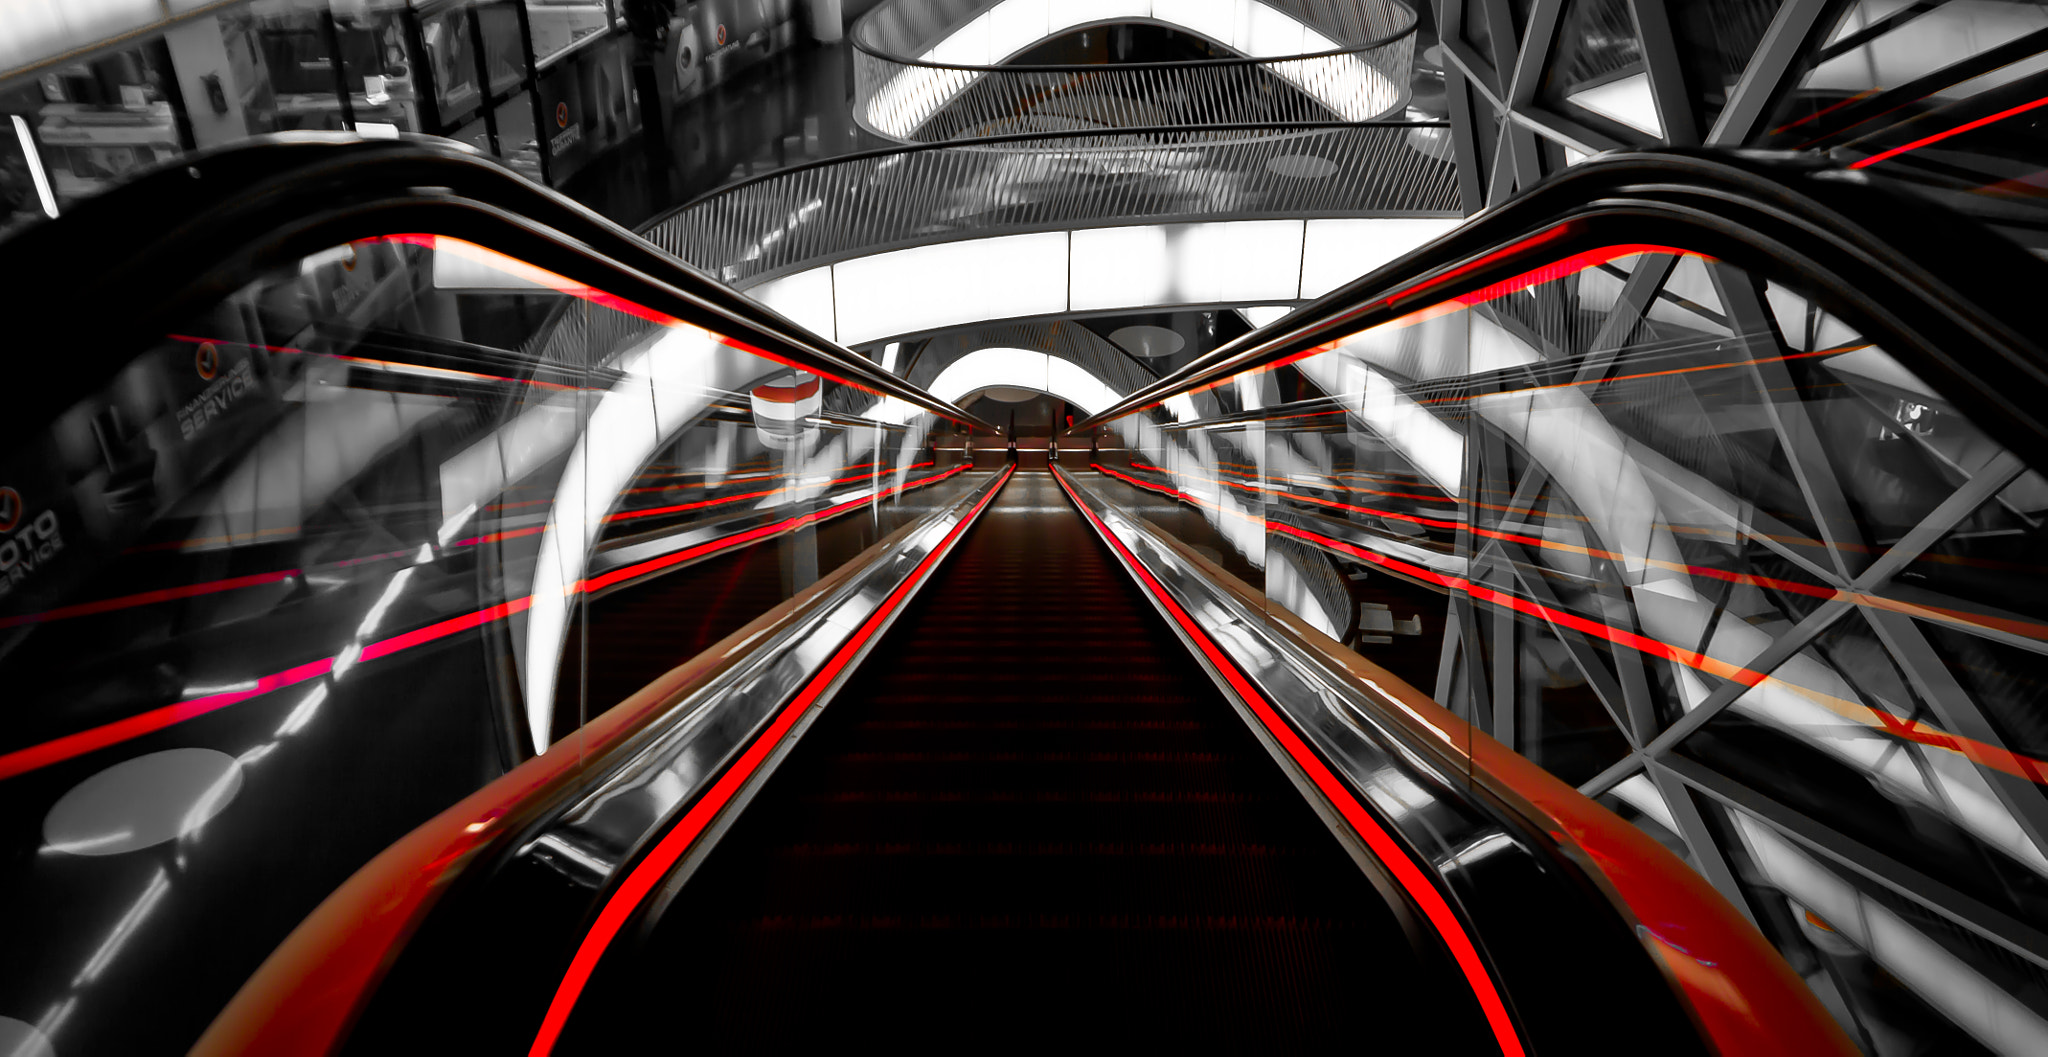 Photograph Escalator by Julian Wagner on 500px